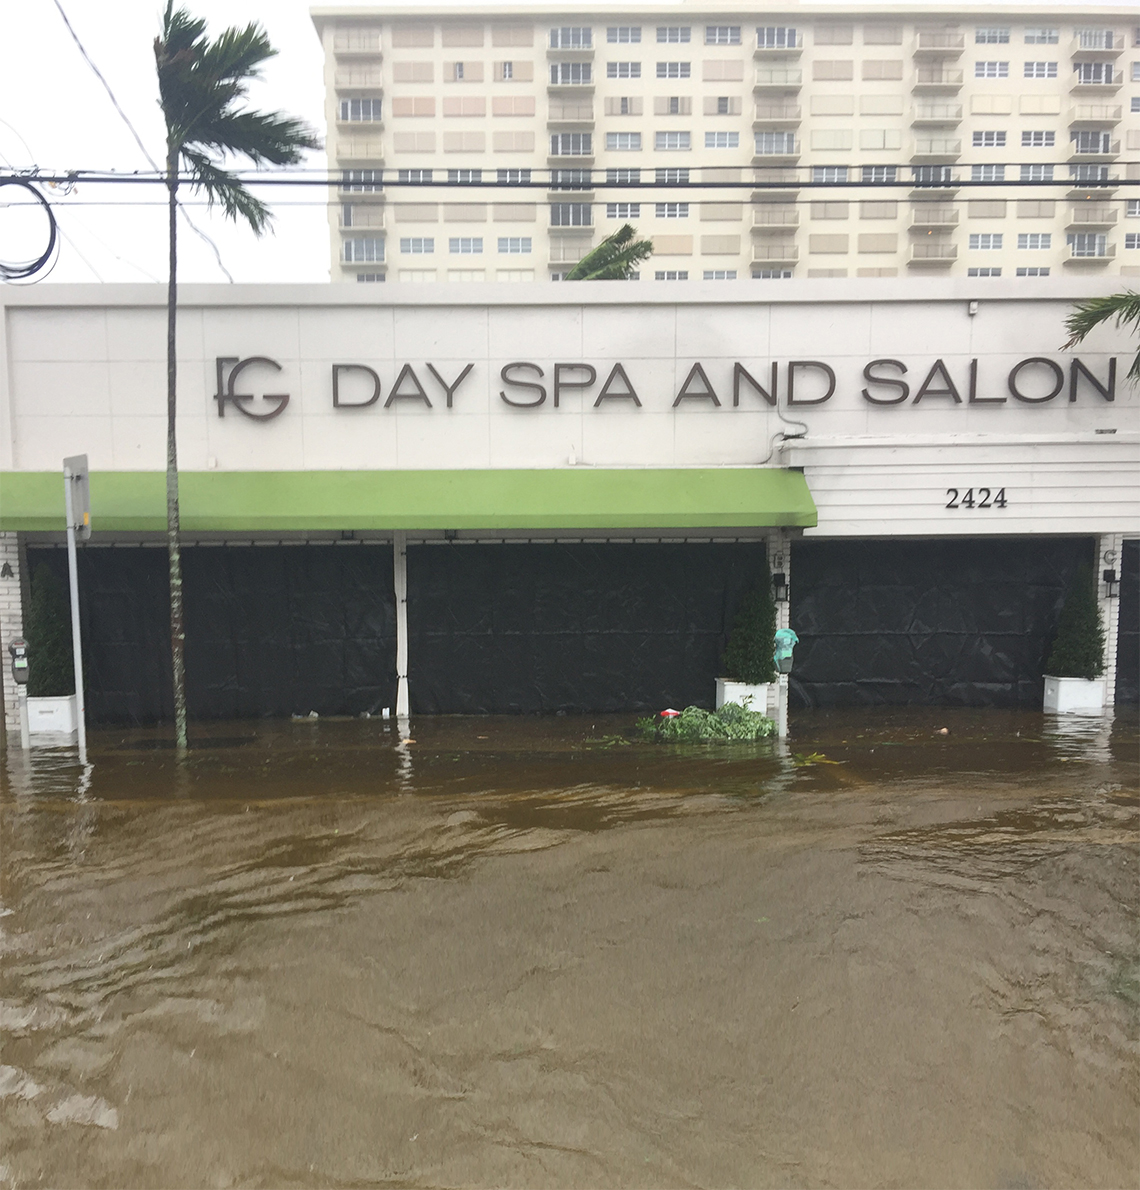 Chris McKinley